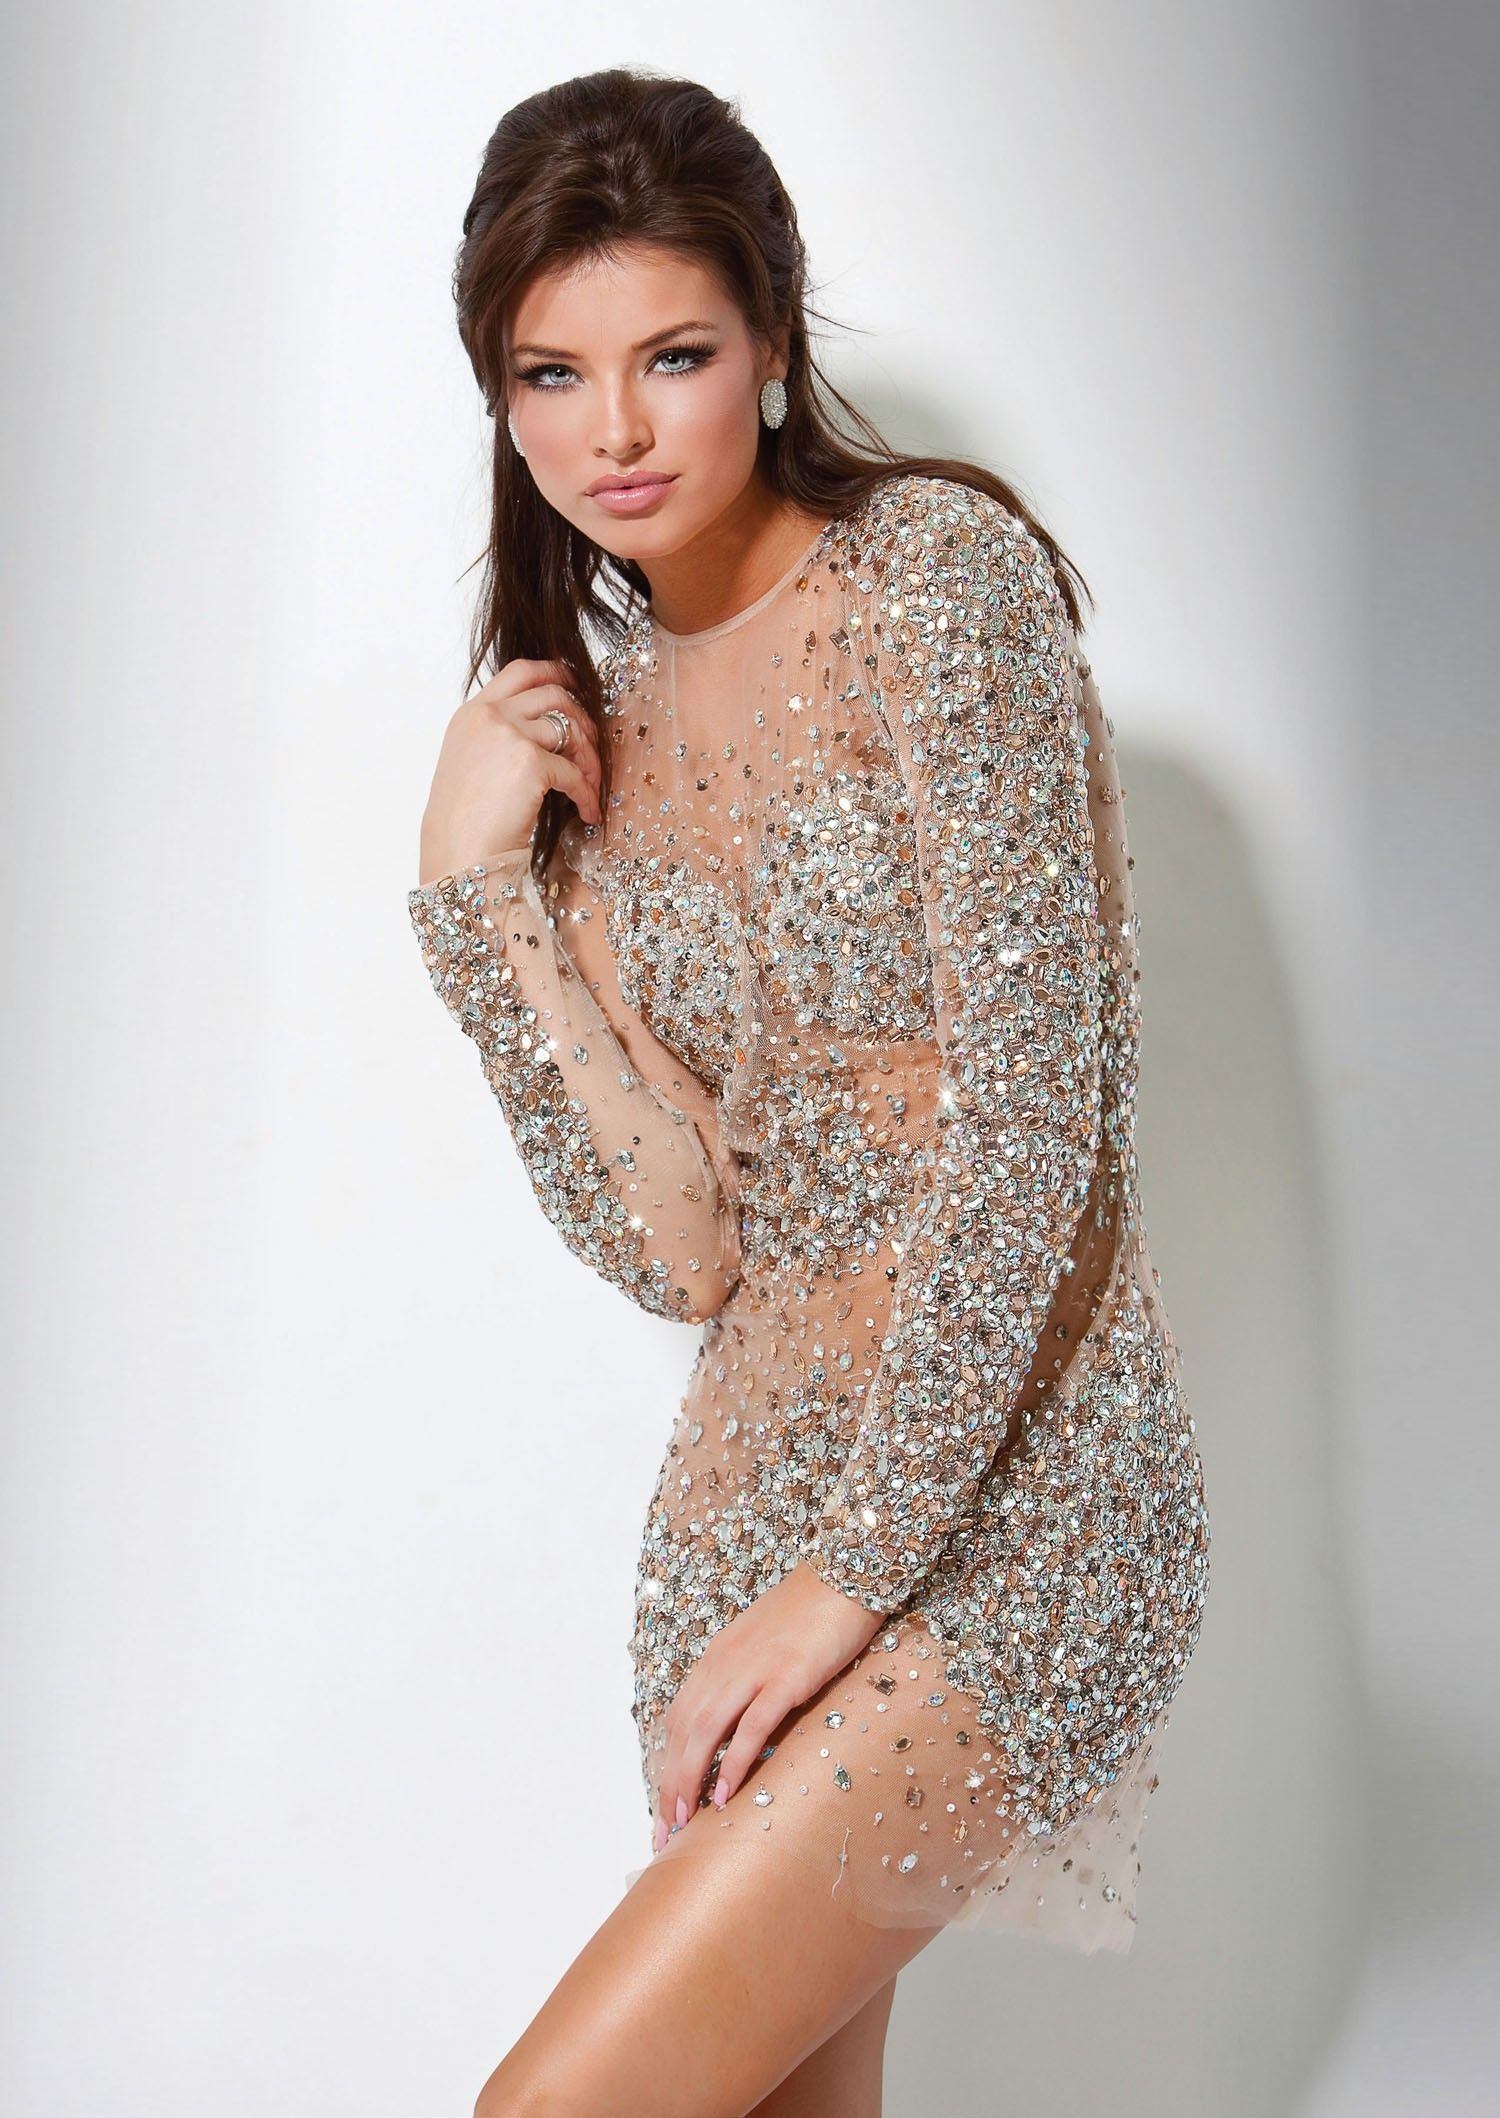 Jovani 7757 Sassy Cocktail Dress | Sleeved dress, Sequin evening ...